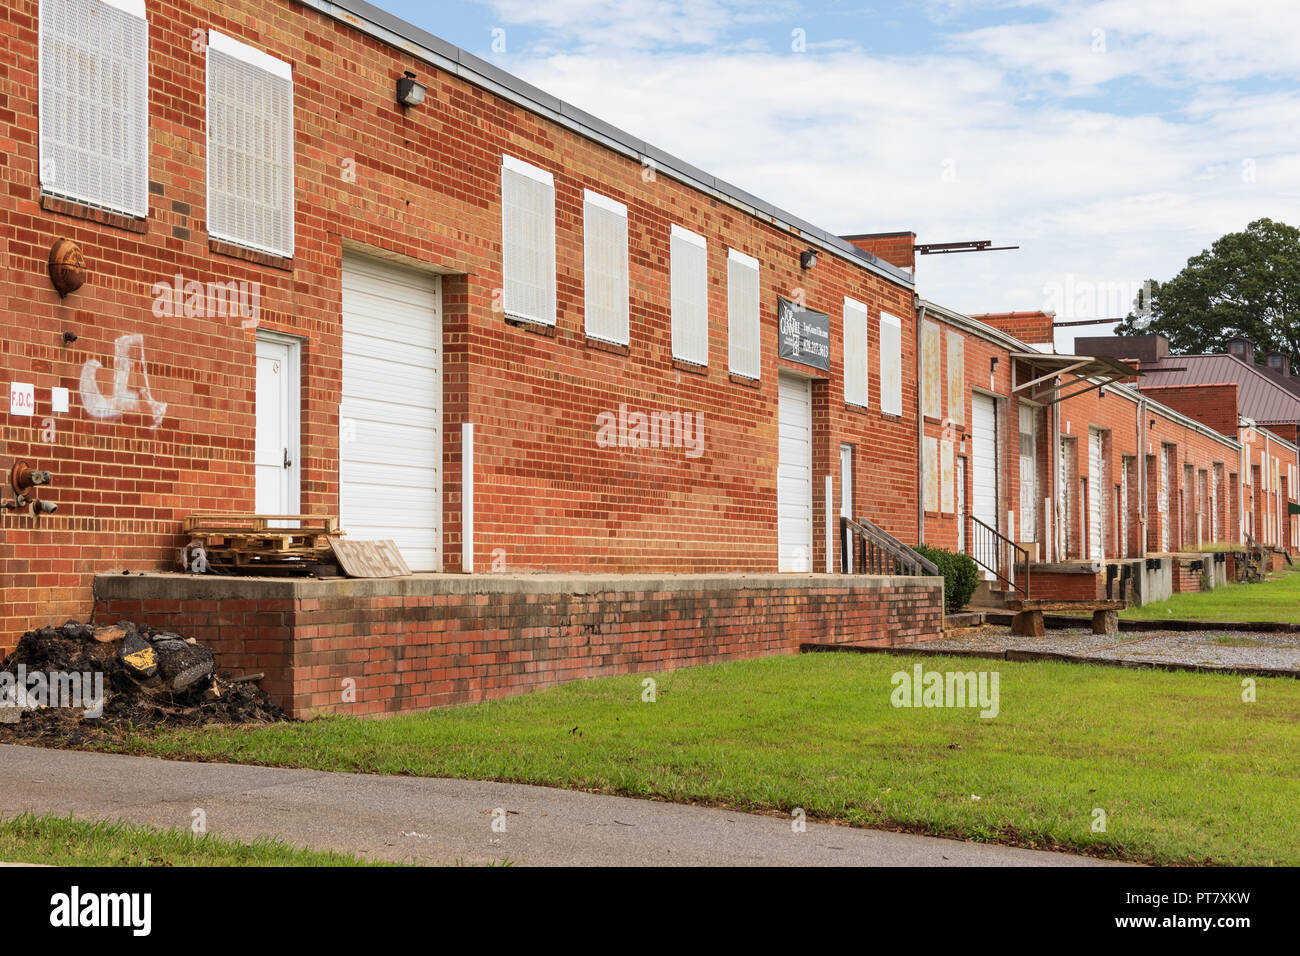 HICKORY, NC, USA-9/18/18:  A line of low loading docks and bay doors of an old industrial building. Stock Photo